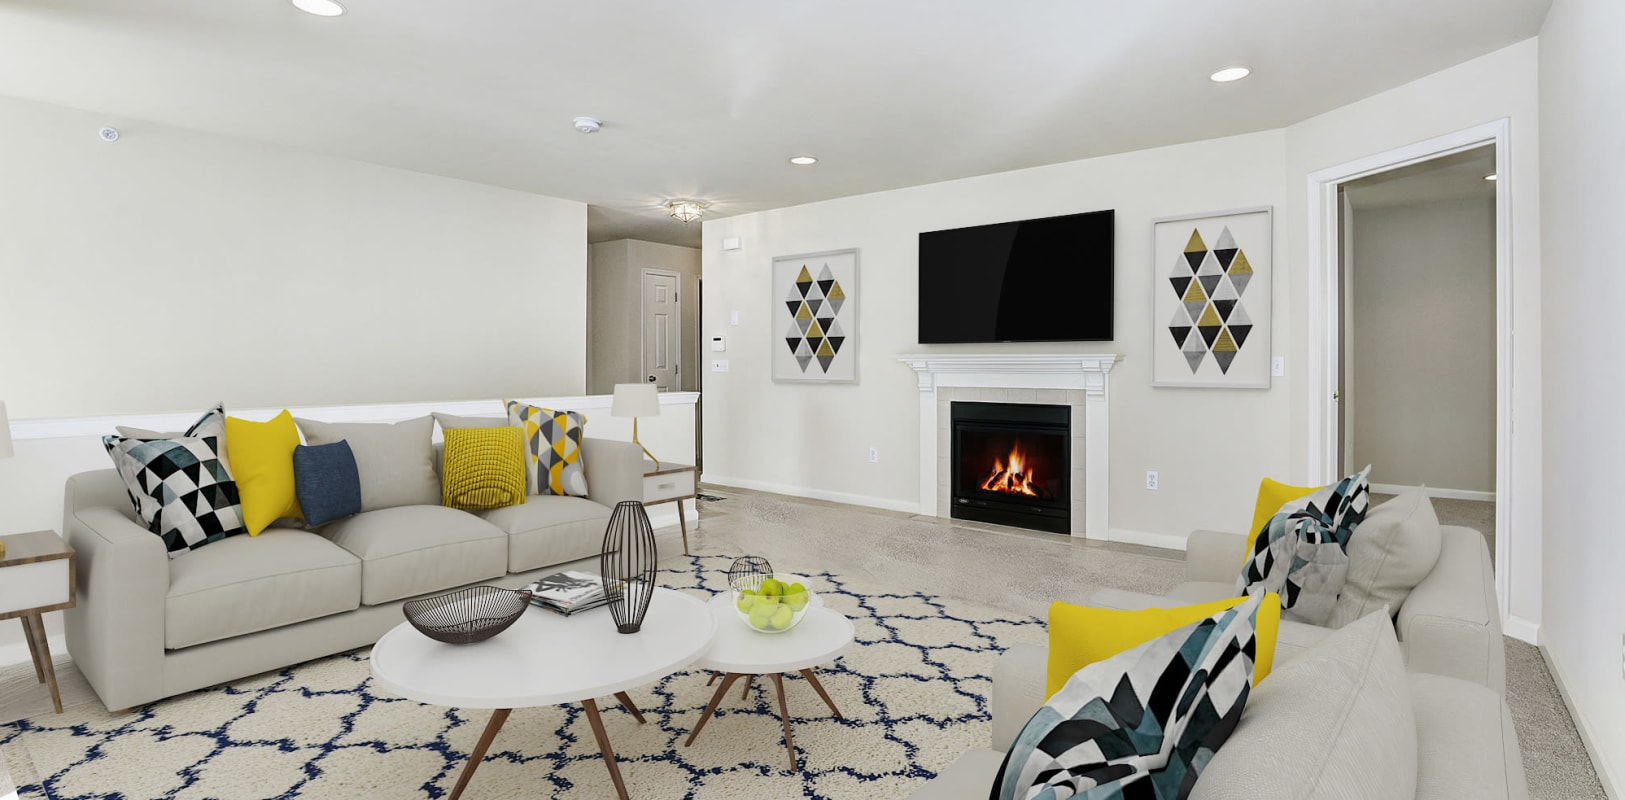 New plush carpeting and a fireplace in a model home's living area at Hanover Glen in Bethlehem, Pennsylvania